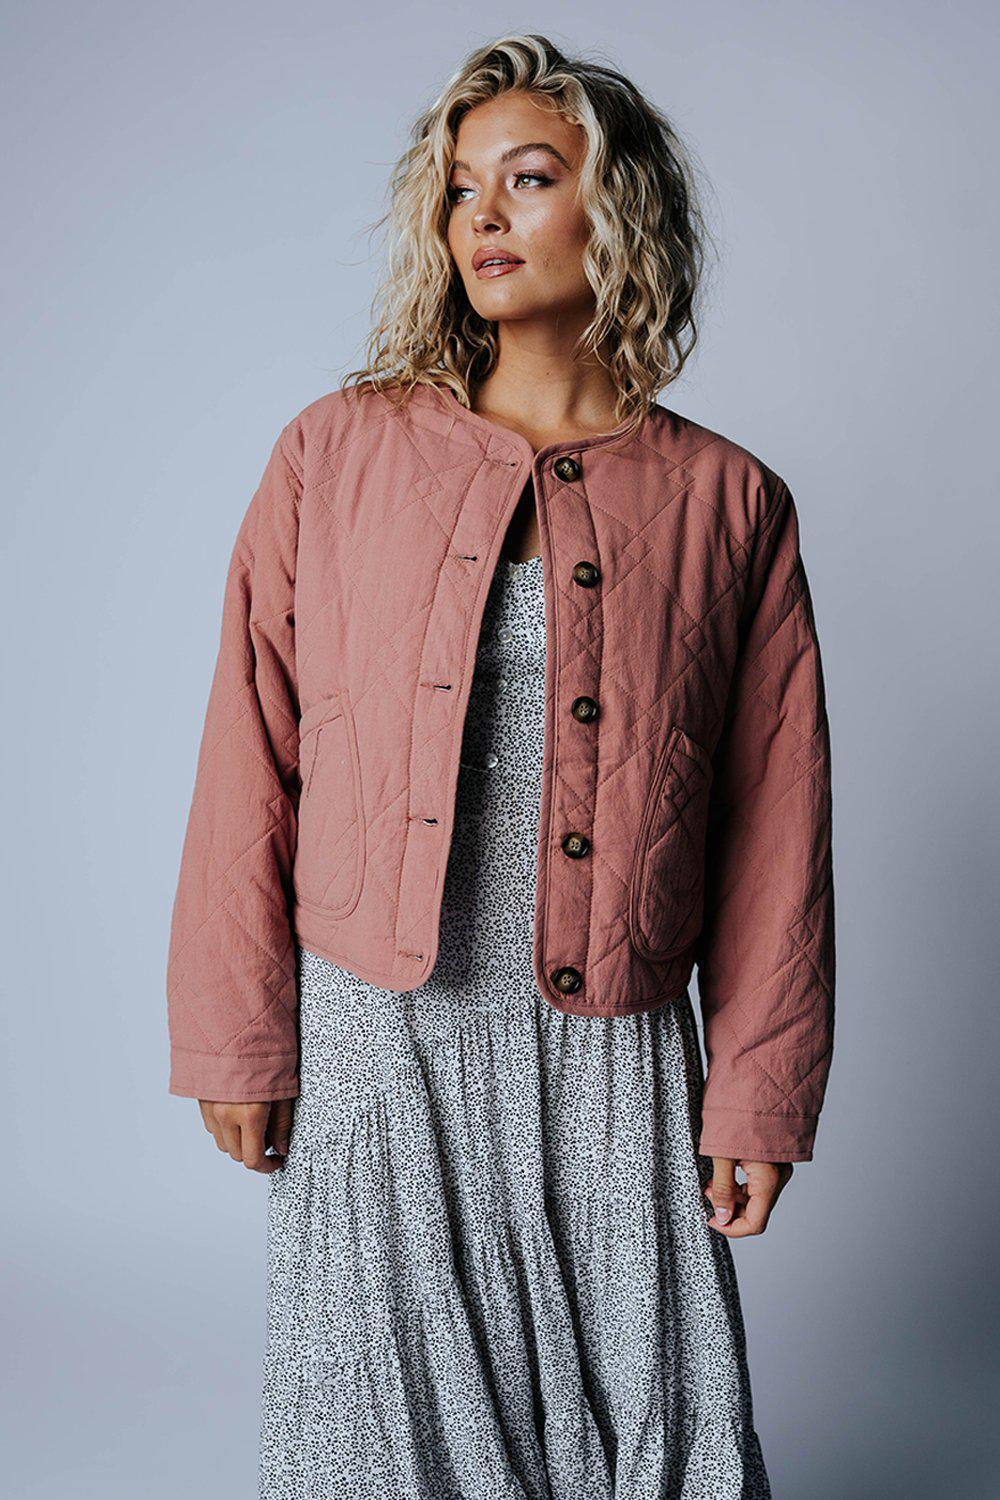 best_seller, Walk in September Coat in Mauve, Top, women's clothing, dresses, skirts, coats, jackets, shoes, boots, tops, tee shirts, jeans, free people, levi's, rollas, jumpsuits, bottoms, tops, sweaters, pullovers, pants, shorts, sweats,.